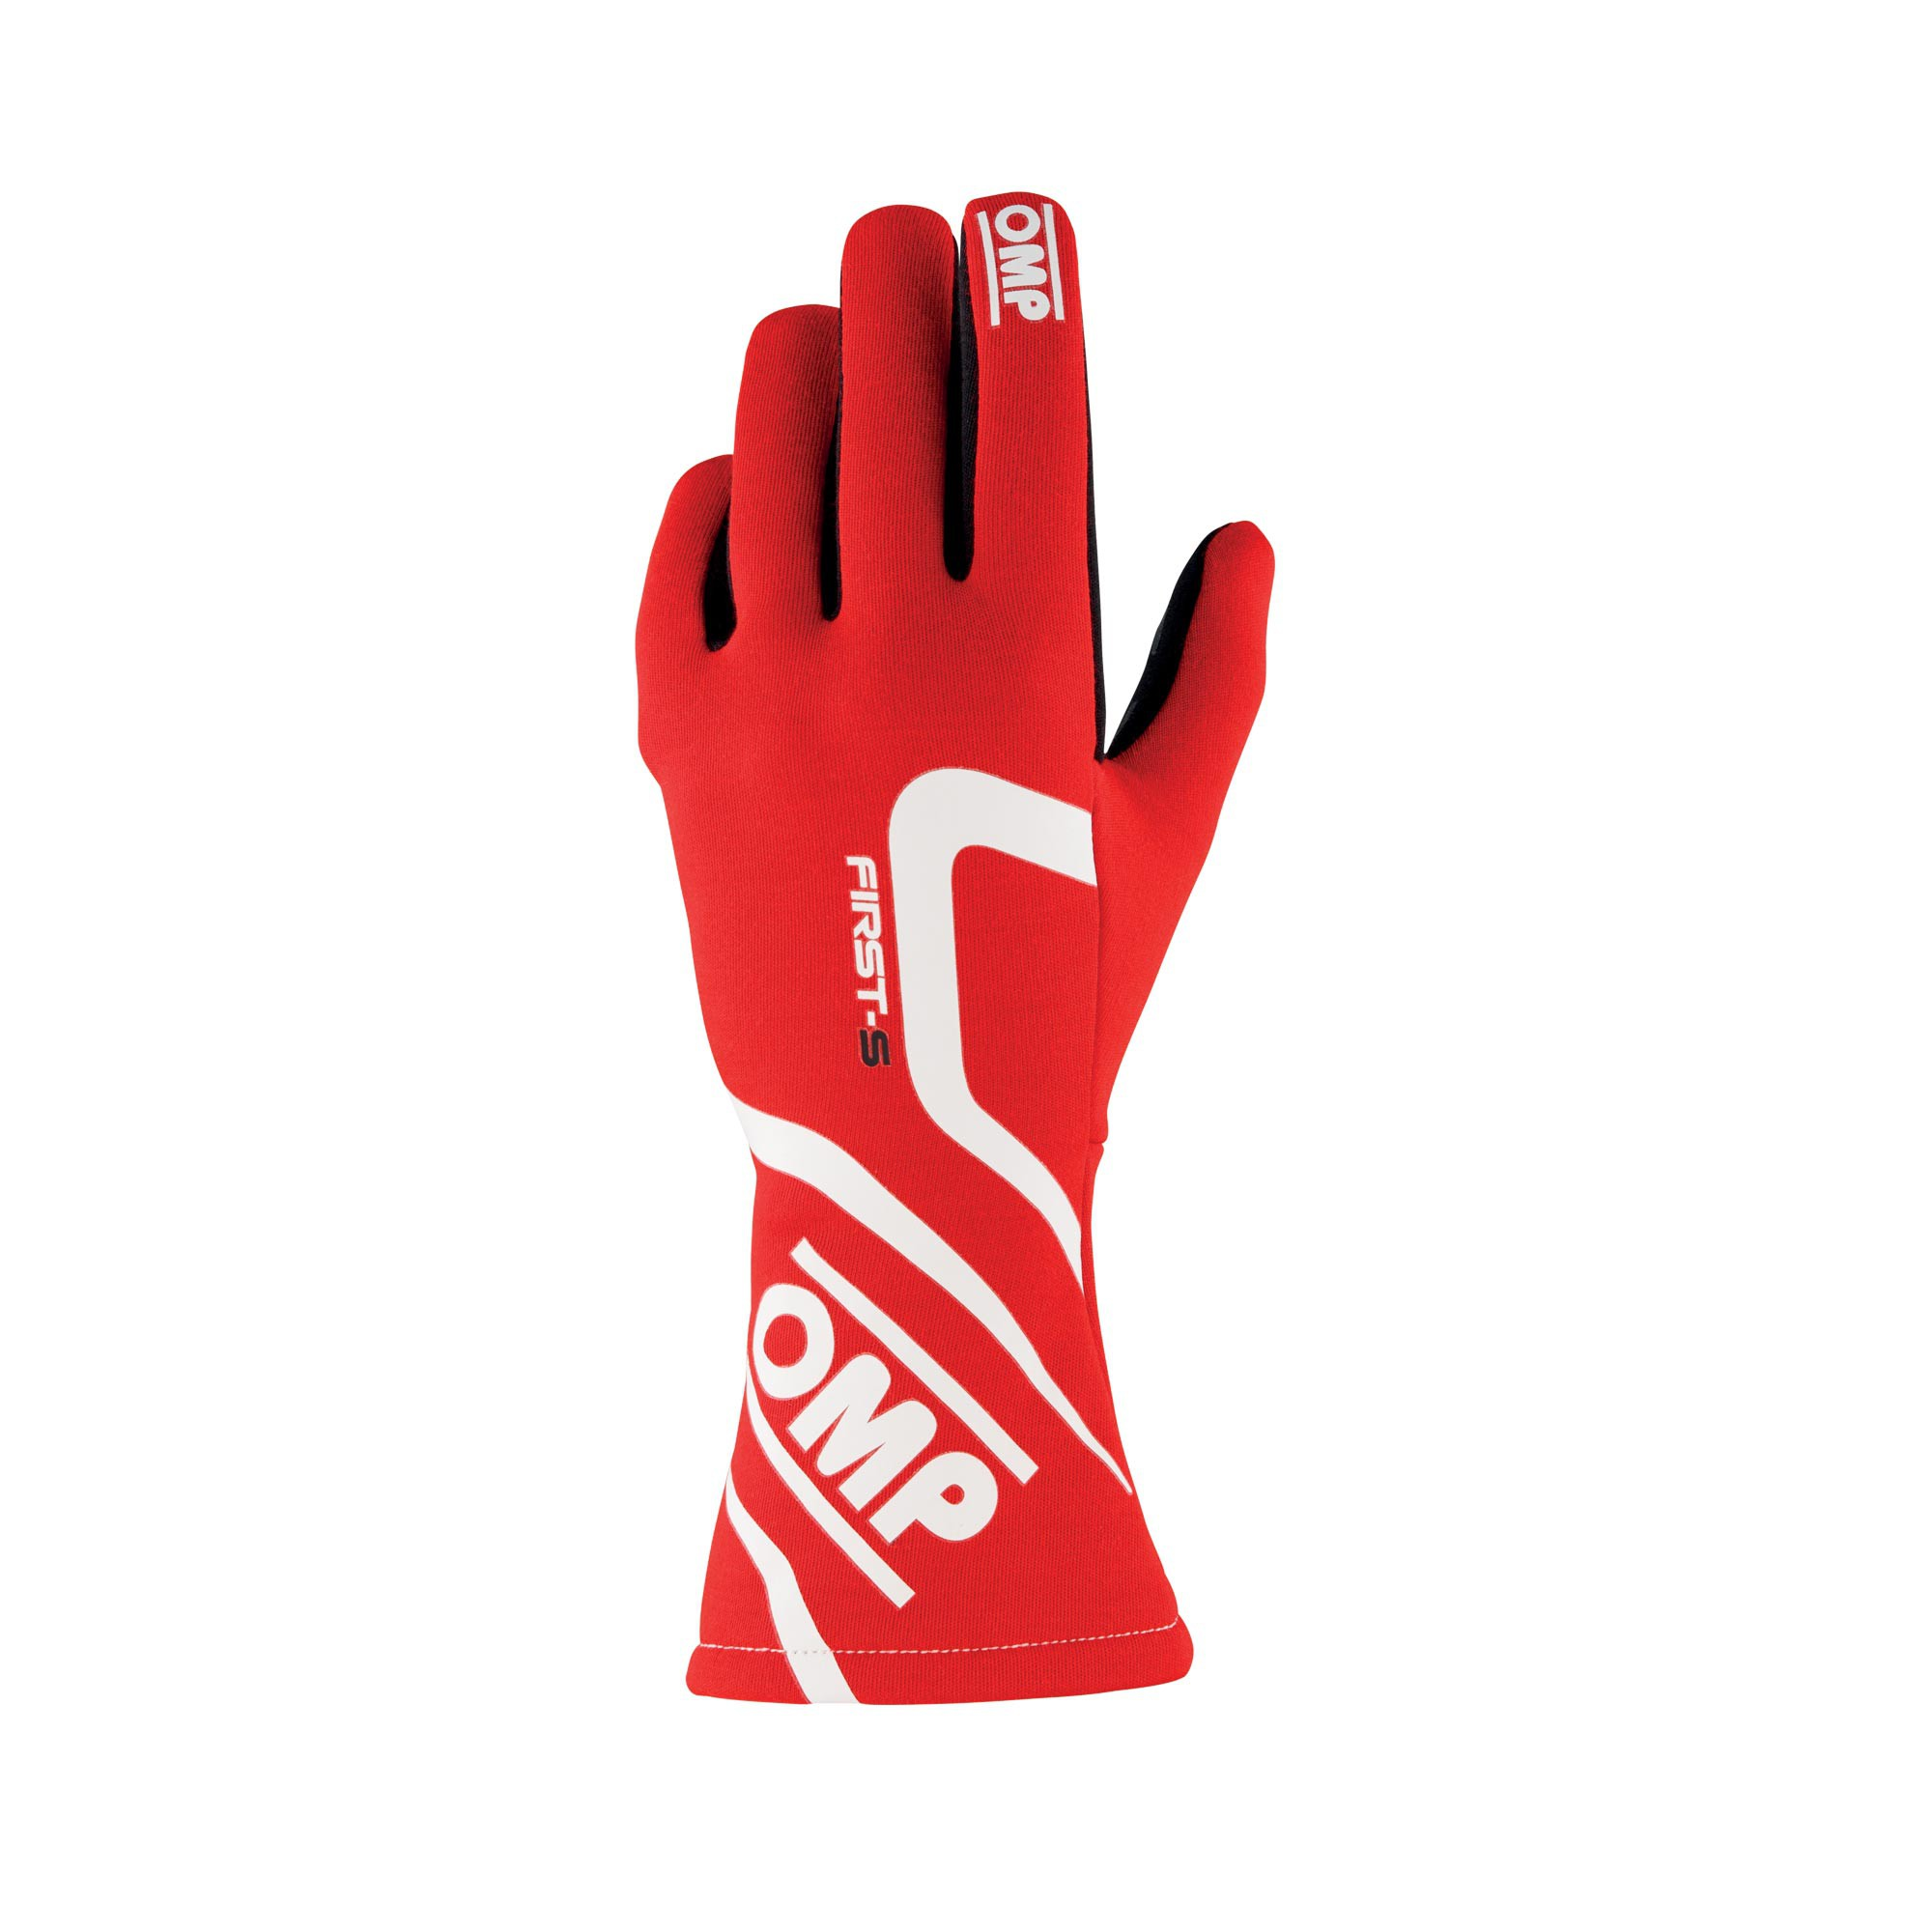 FIRST-S GLOVES RED SIZE L FIA 8856-2018